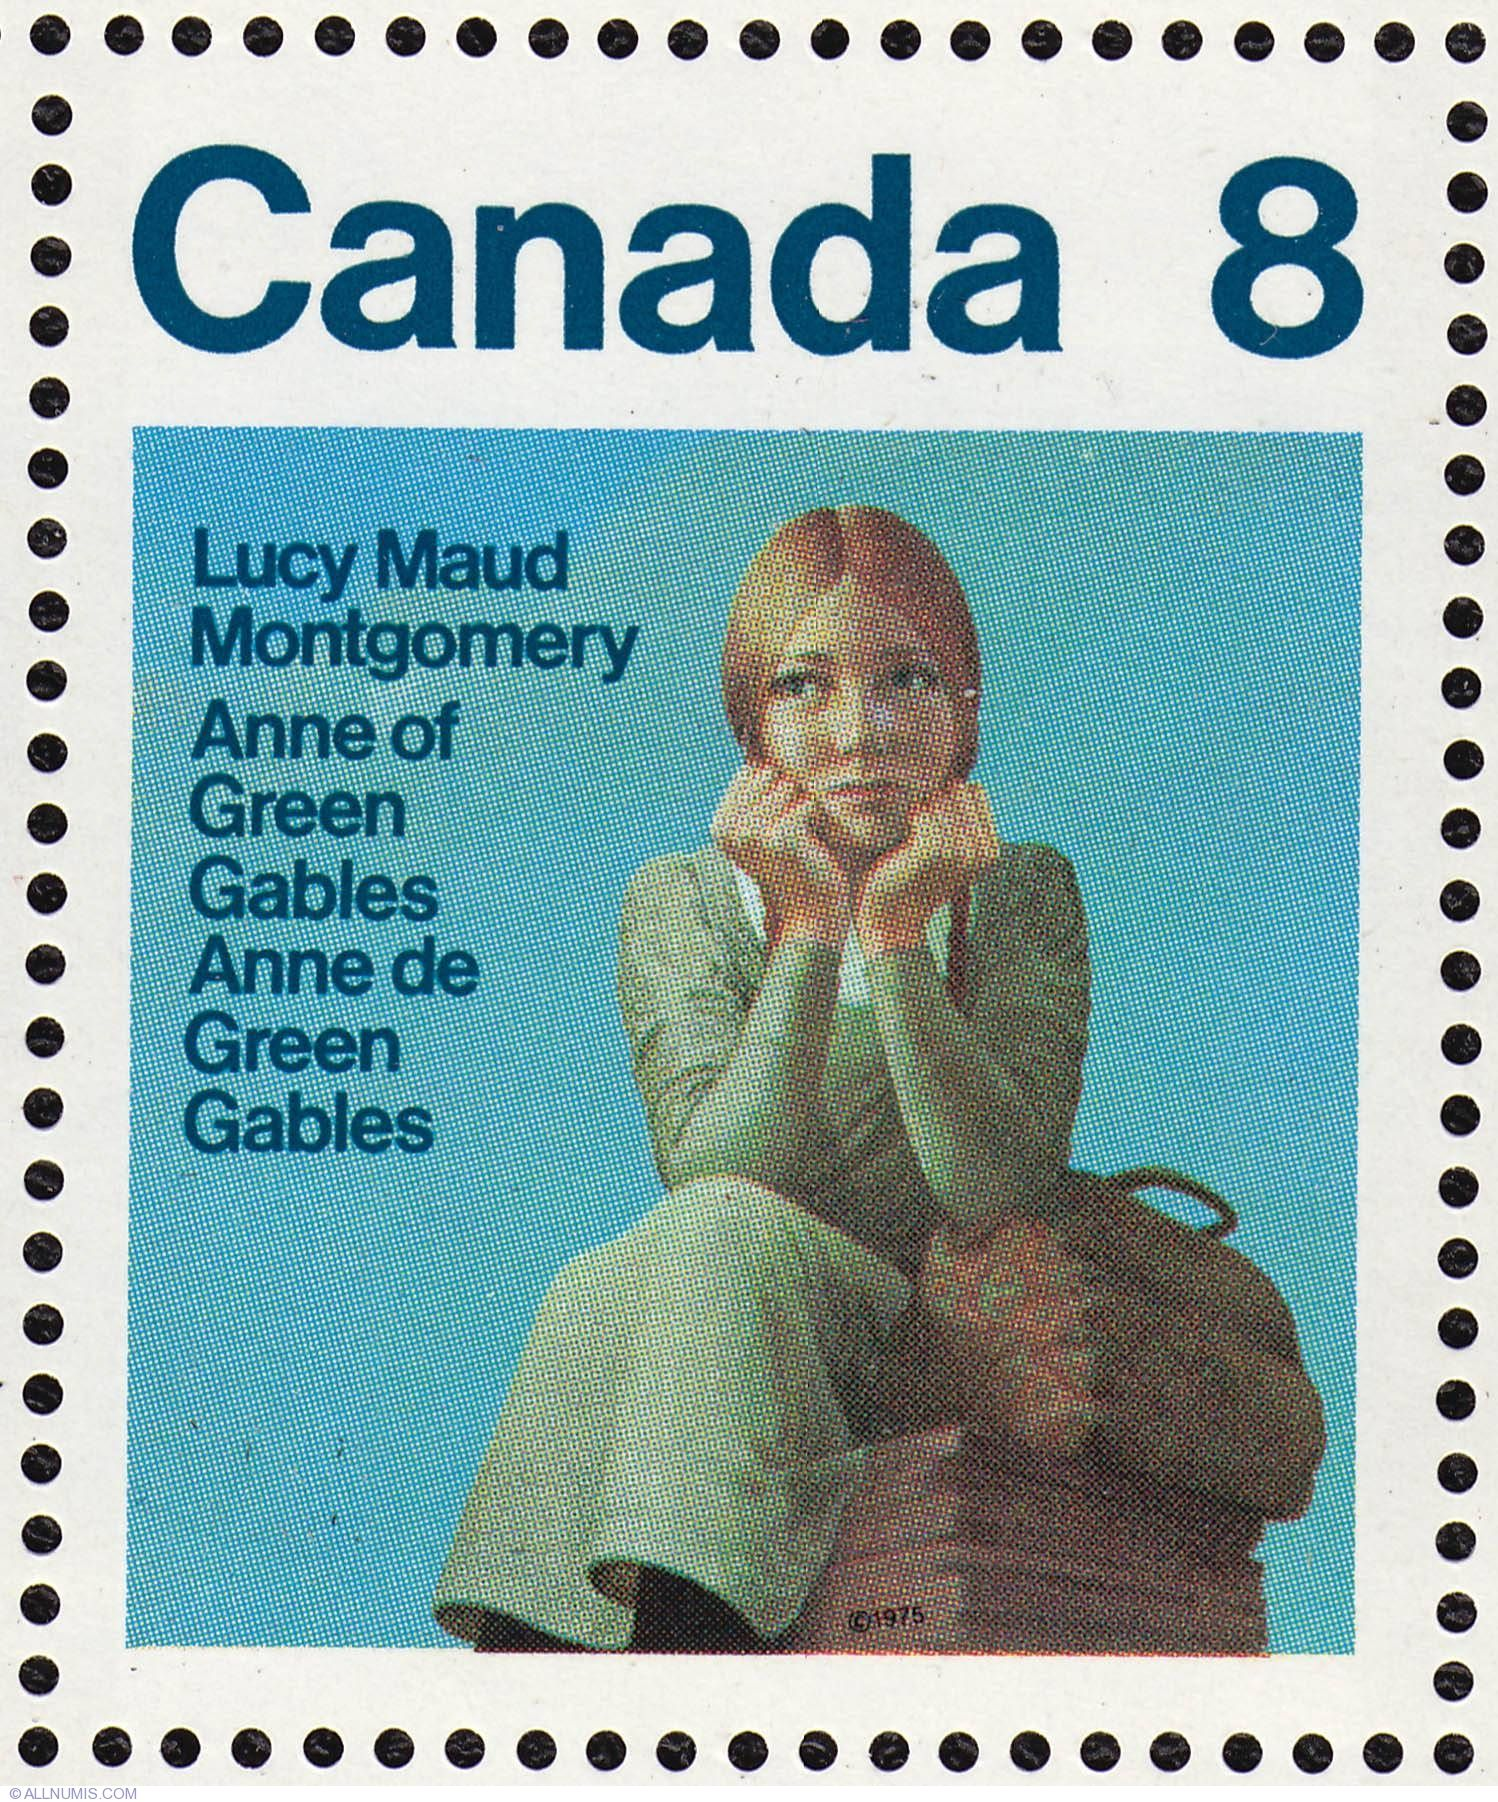 Canada Stamp 658 Lucy Maud Montgomery 1975 8 In 2020 With